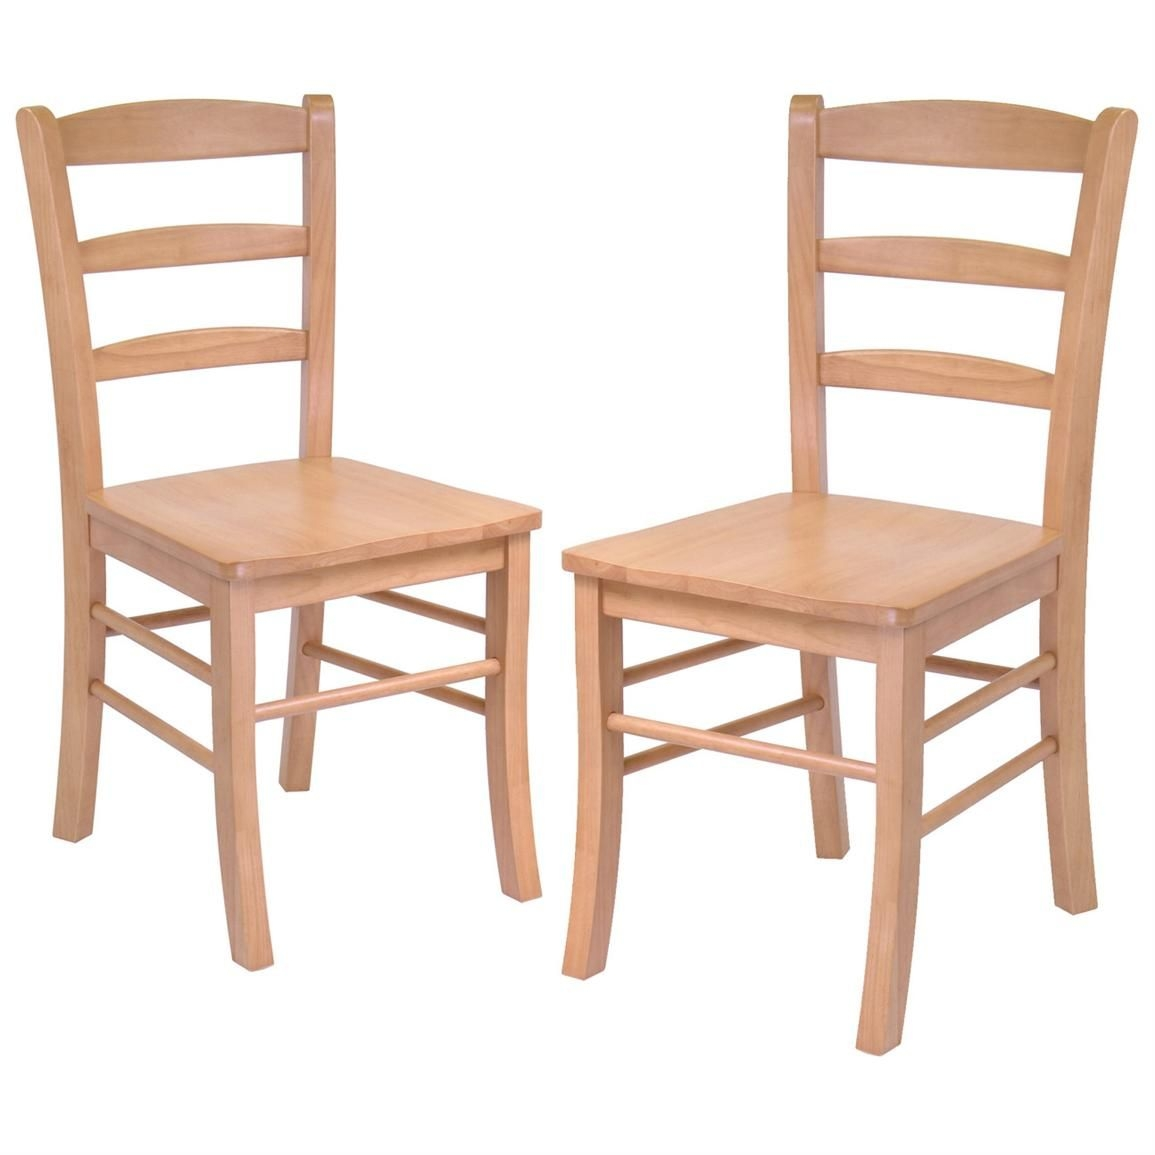 Winsome Set Of 2 Light Oak Ladder Back Chairs  151003 Kitchen  Dining Stools At Sportsman'S Guide